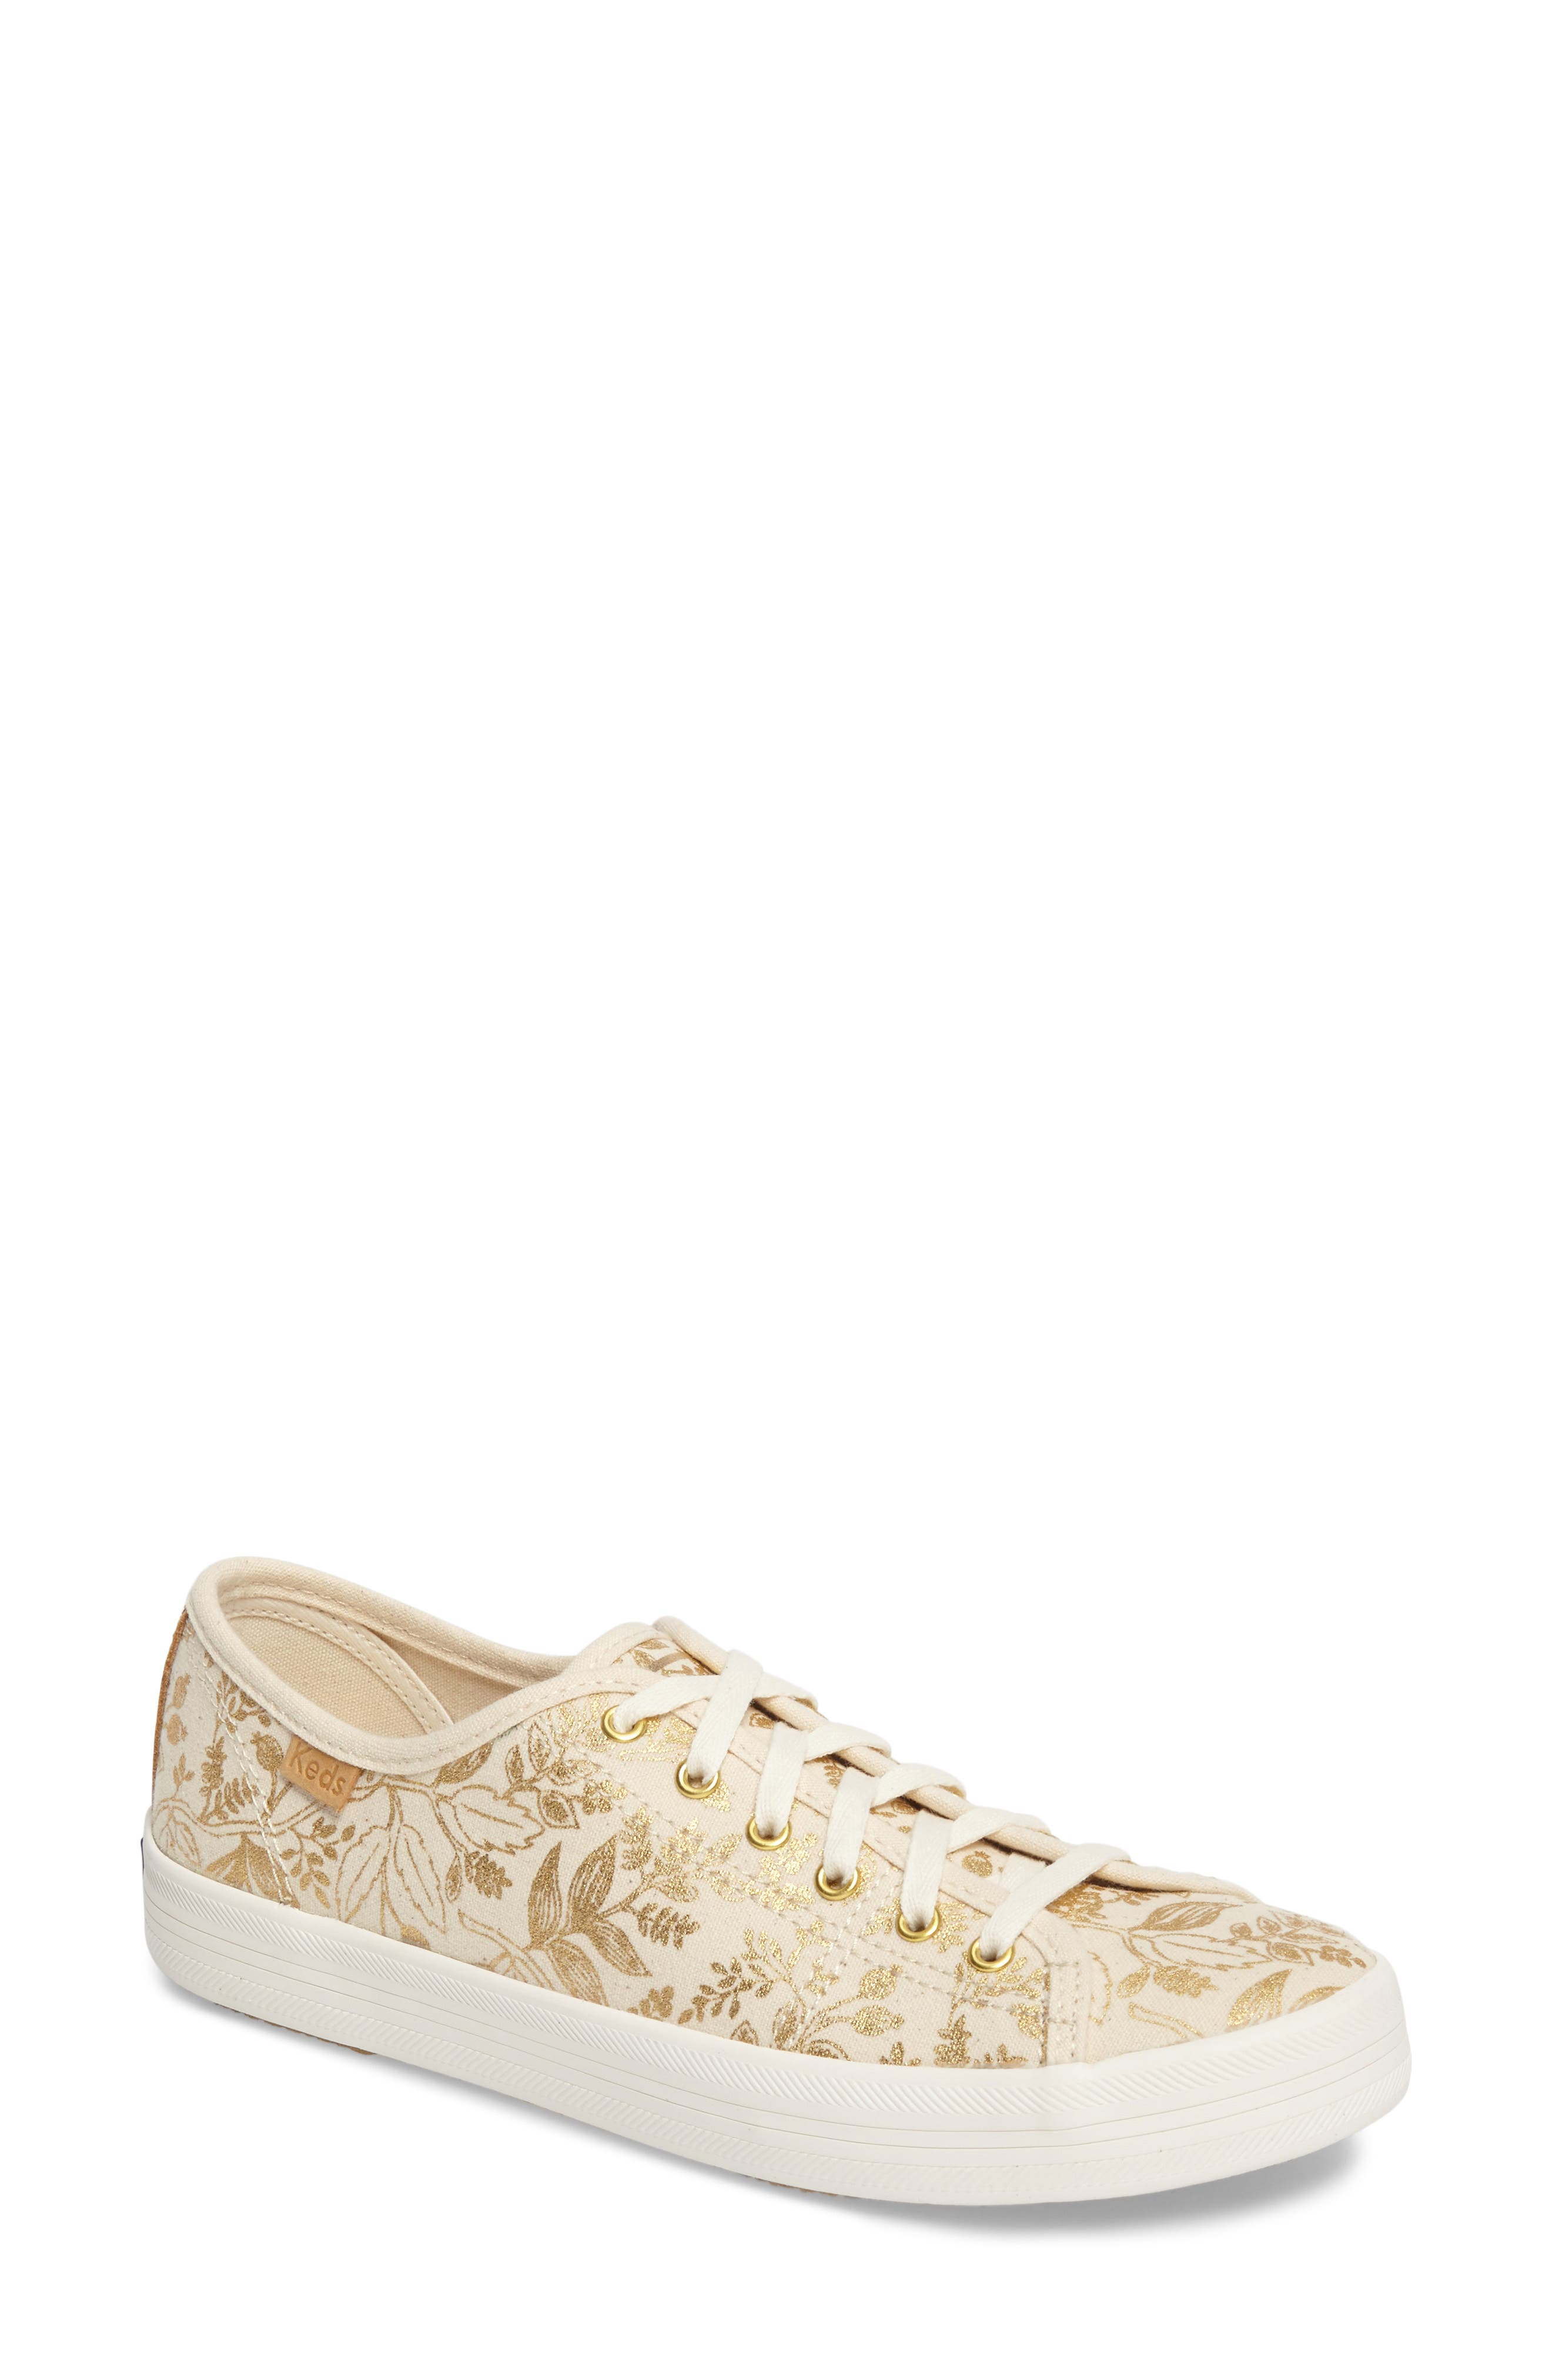 x Rifle Paper Co. Queen Anne Sneaker,                             Main thumbnail 1, color,                             Natural